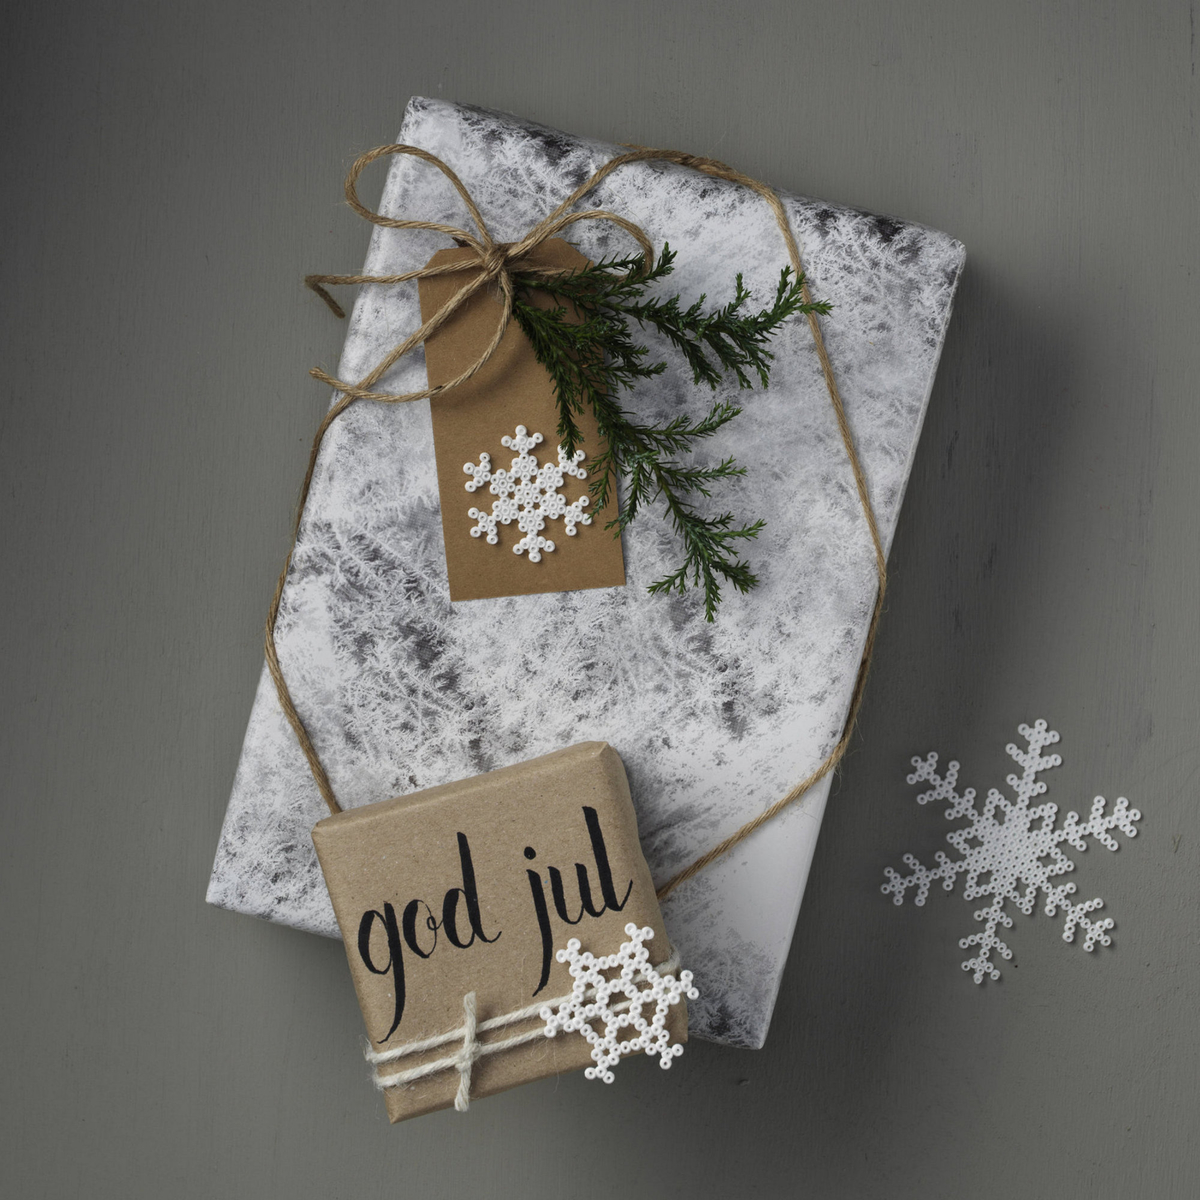 Winter-white Christmas gifts